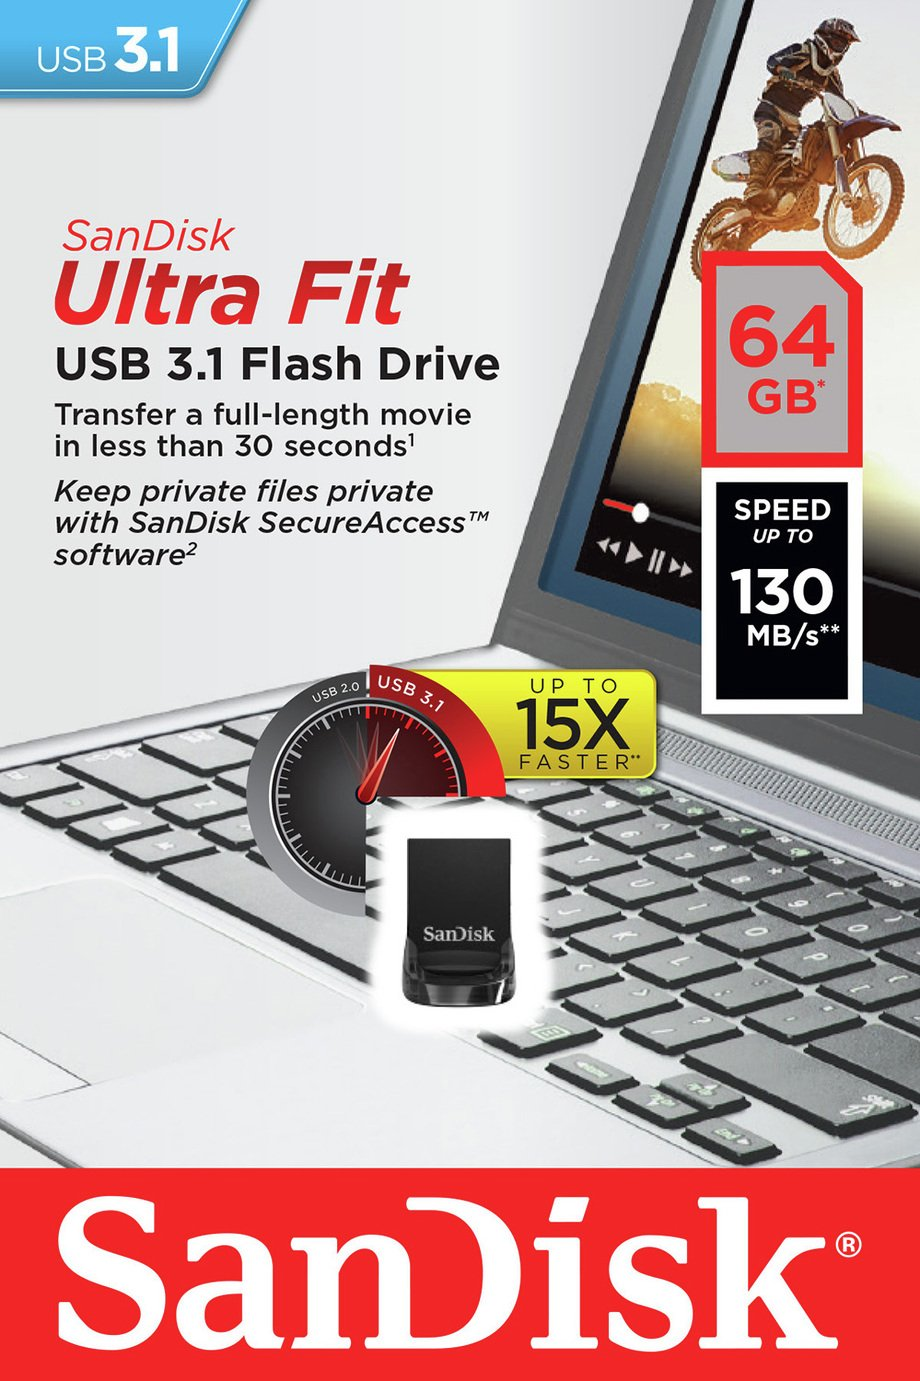 SanDisk Ultra Fit 130MB/s USB 3.1 Flash Drive - 64GB